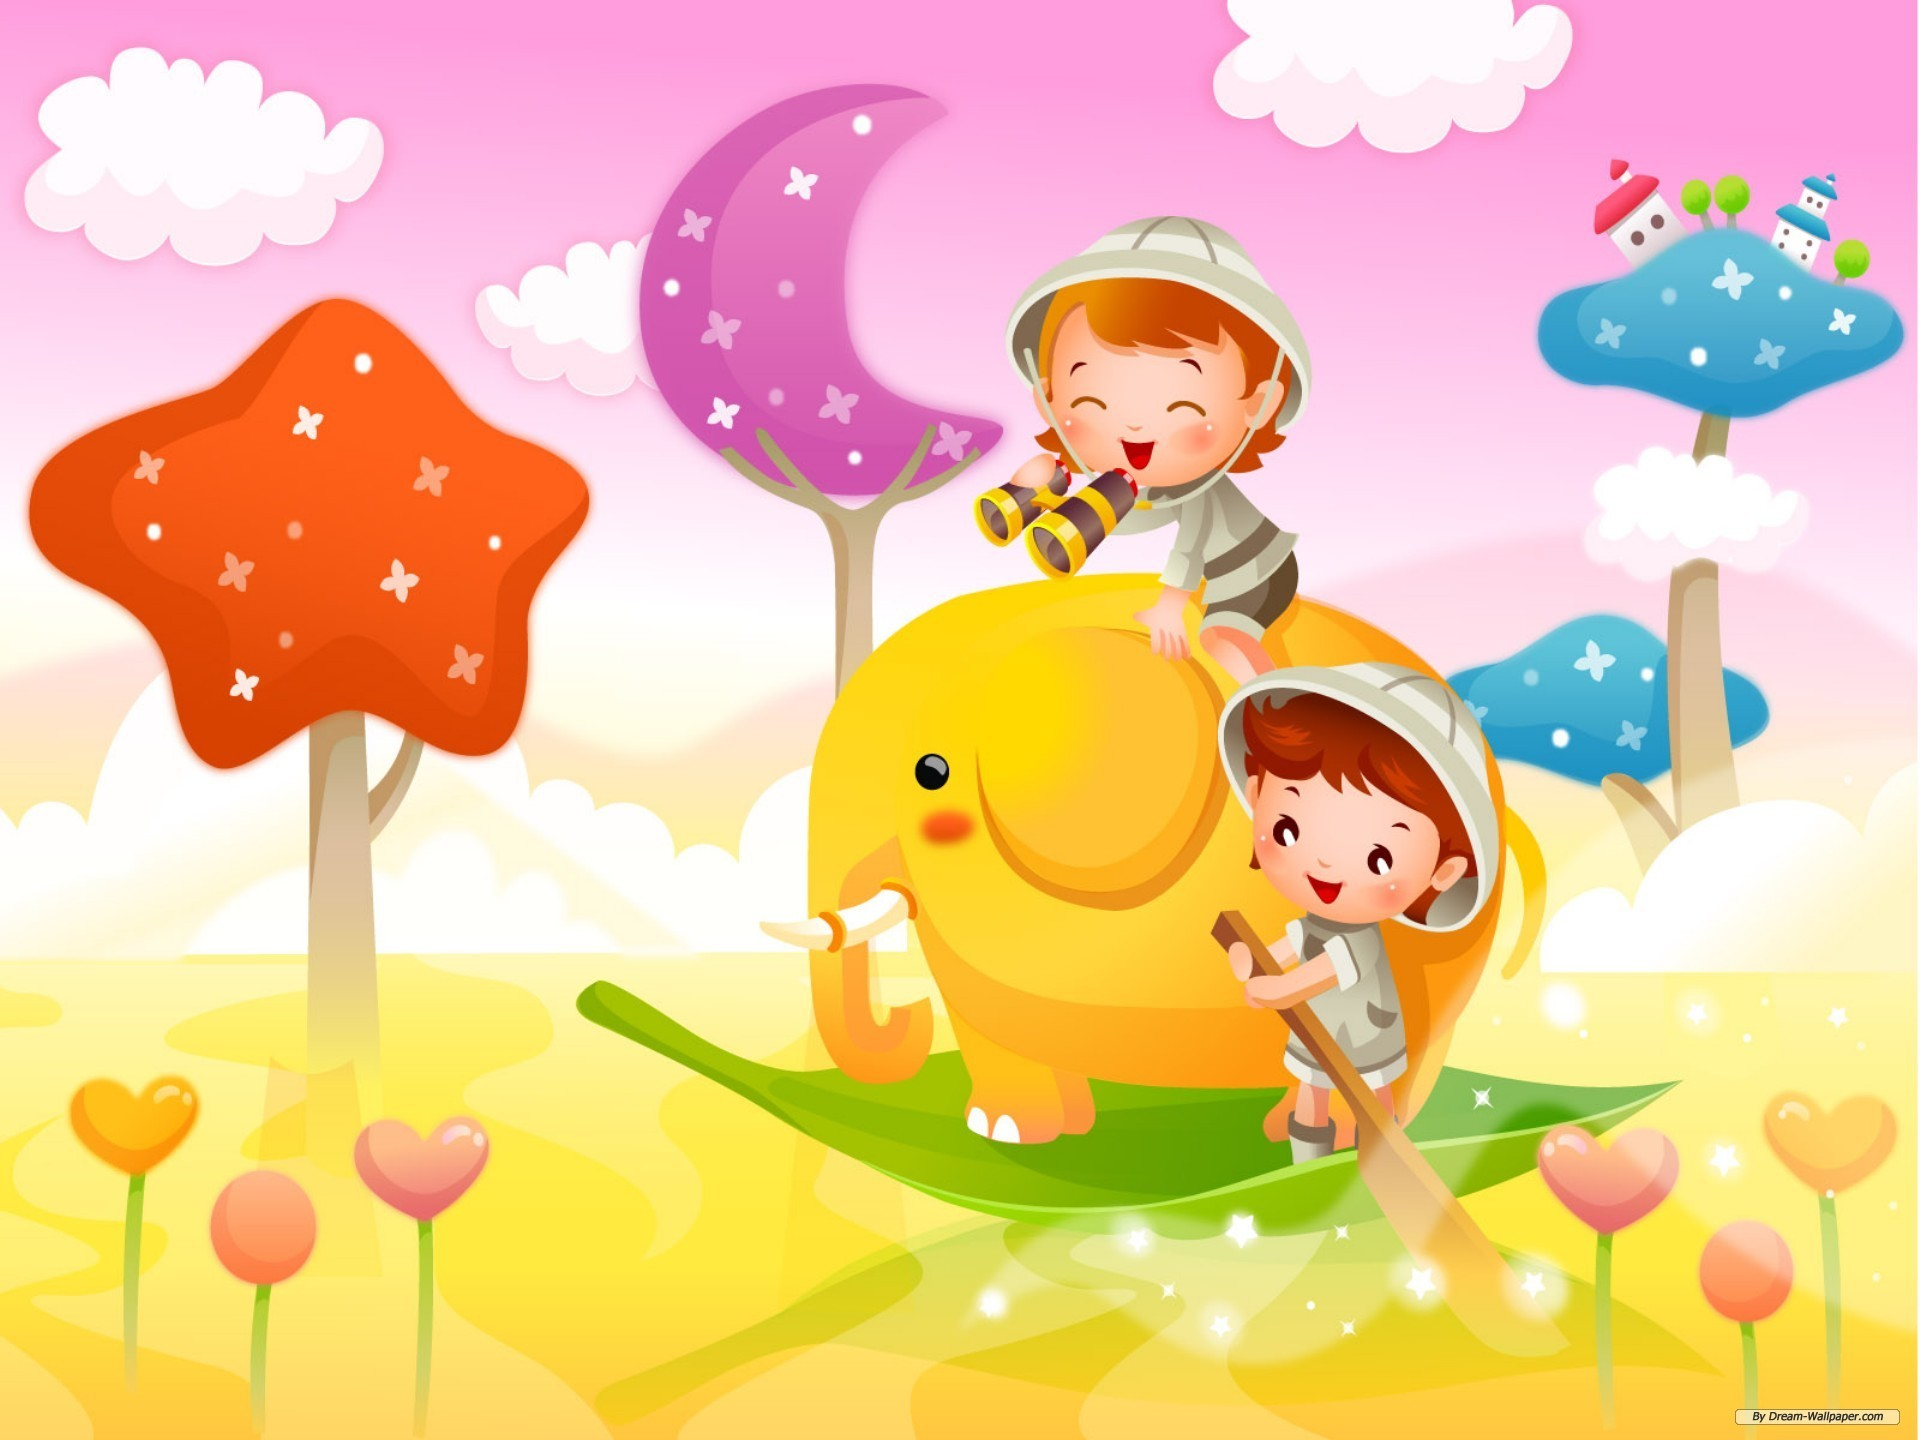 Kids Wallpaper Backgrounds (54+ images)